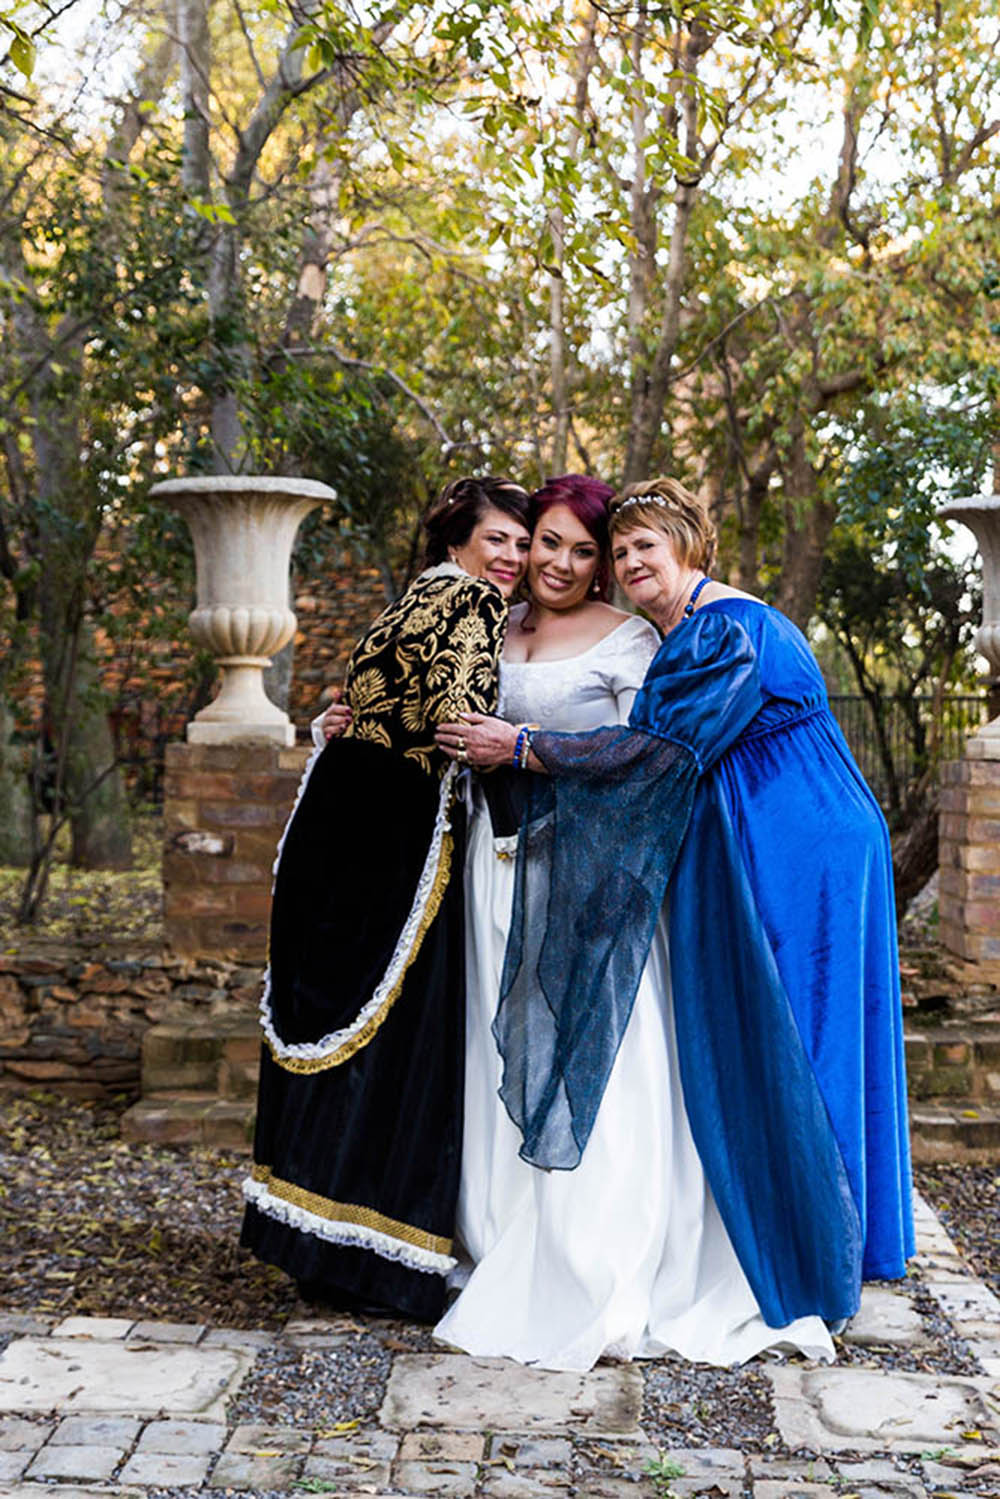 medieval-themed-wedding-medieval-wedding-dgr-photography-castle-wedding-108